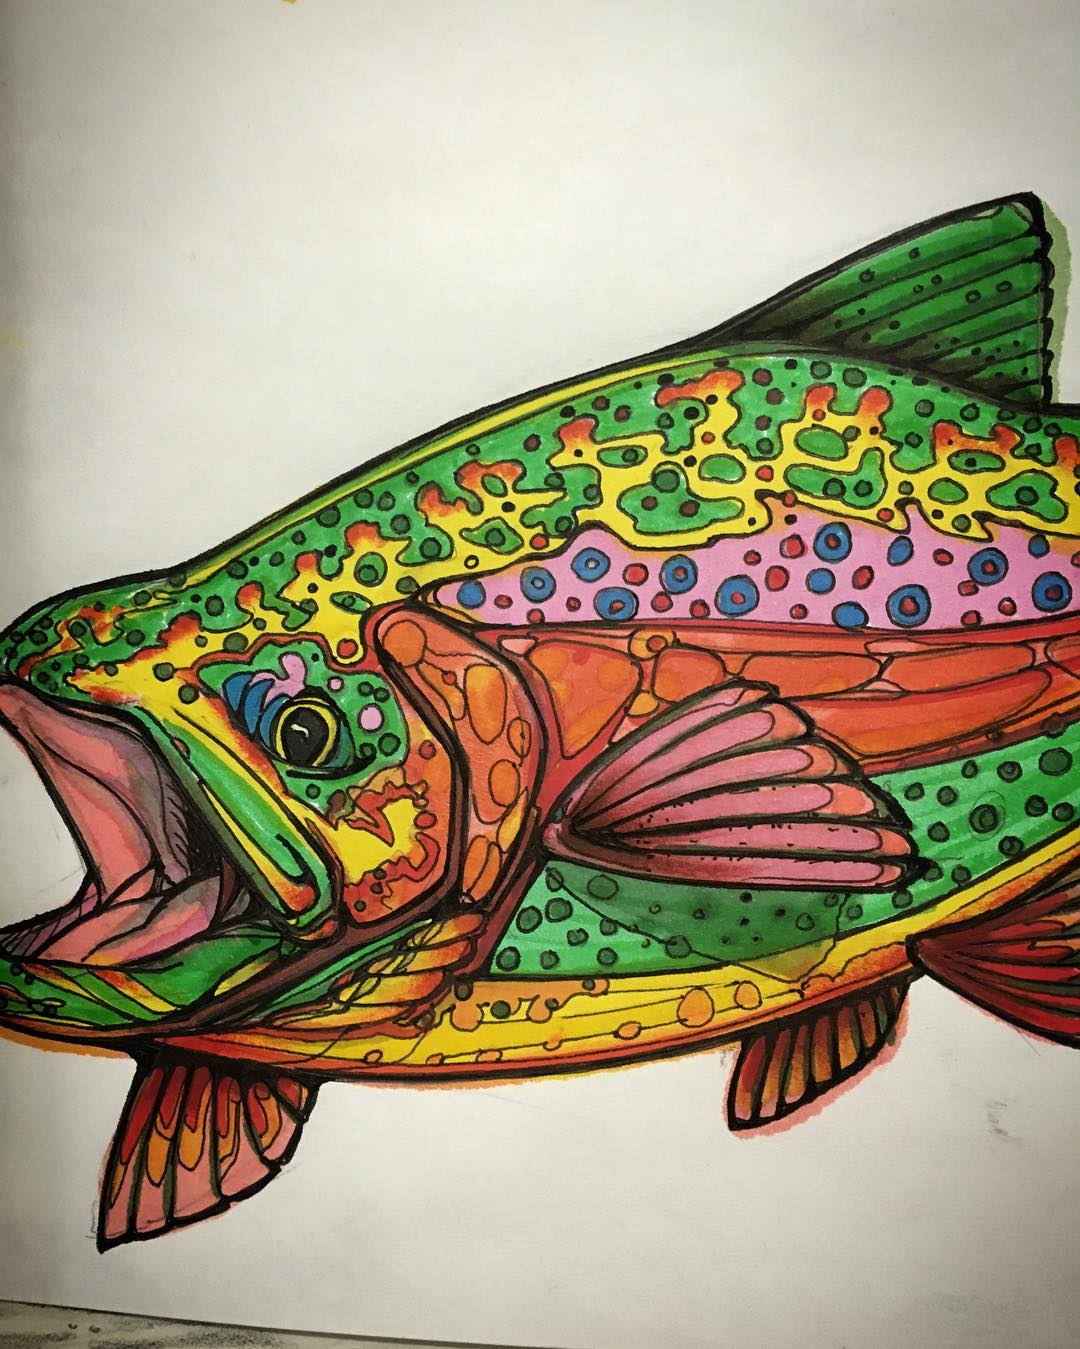 Some more wall art from our shop. Miller drew this one a couple months back. It seems to draw people's attention whenever look at our walk. I guess fish are cool. #troutfishing #trout #graphicdesign #drawing #riseshop #risedesigns #risedesignstahoe...